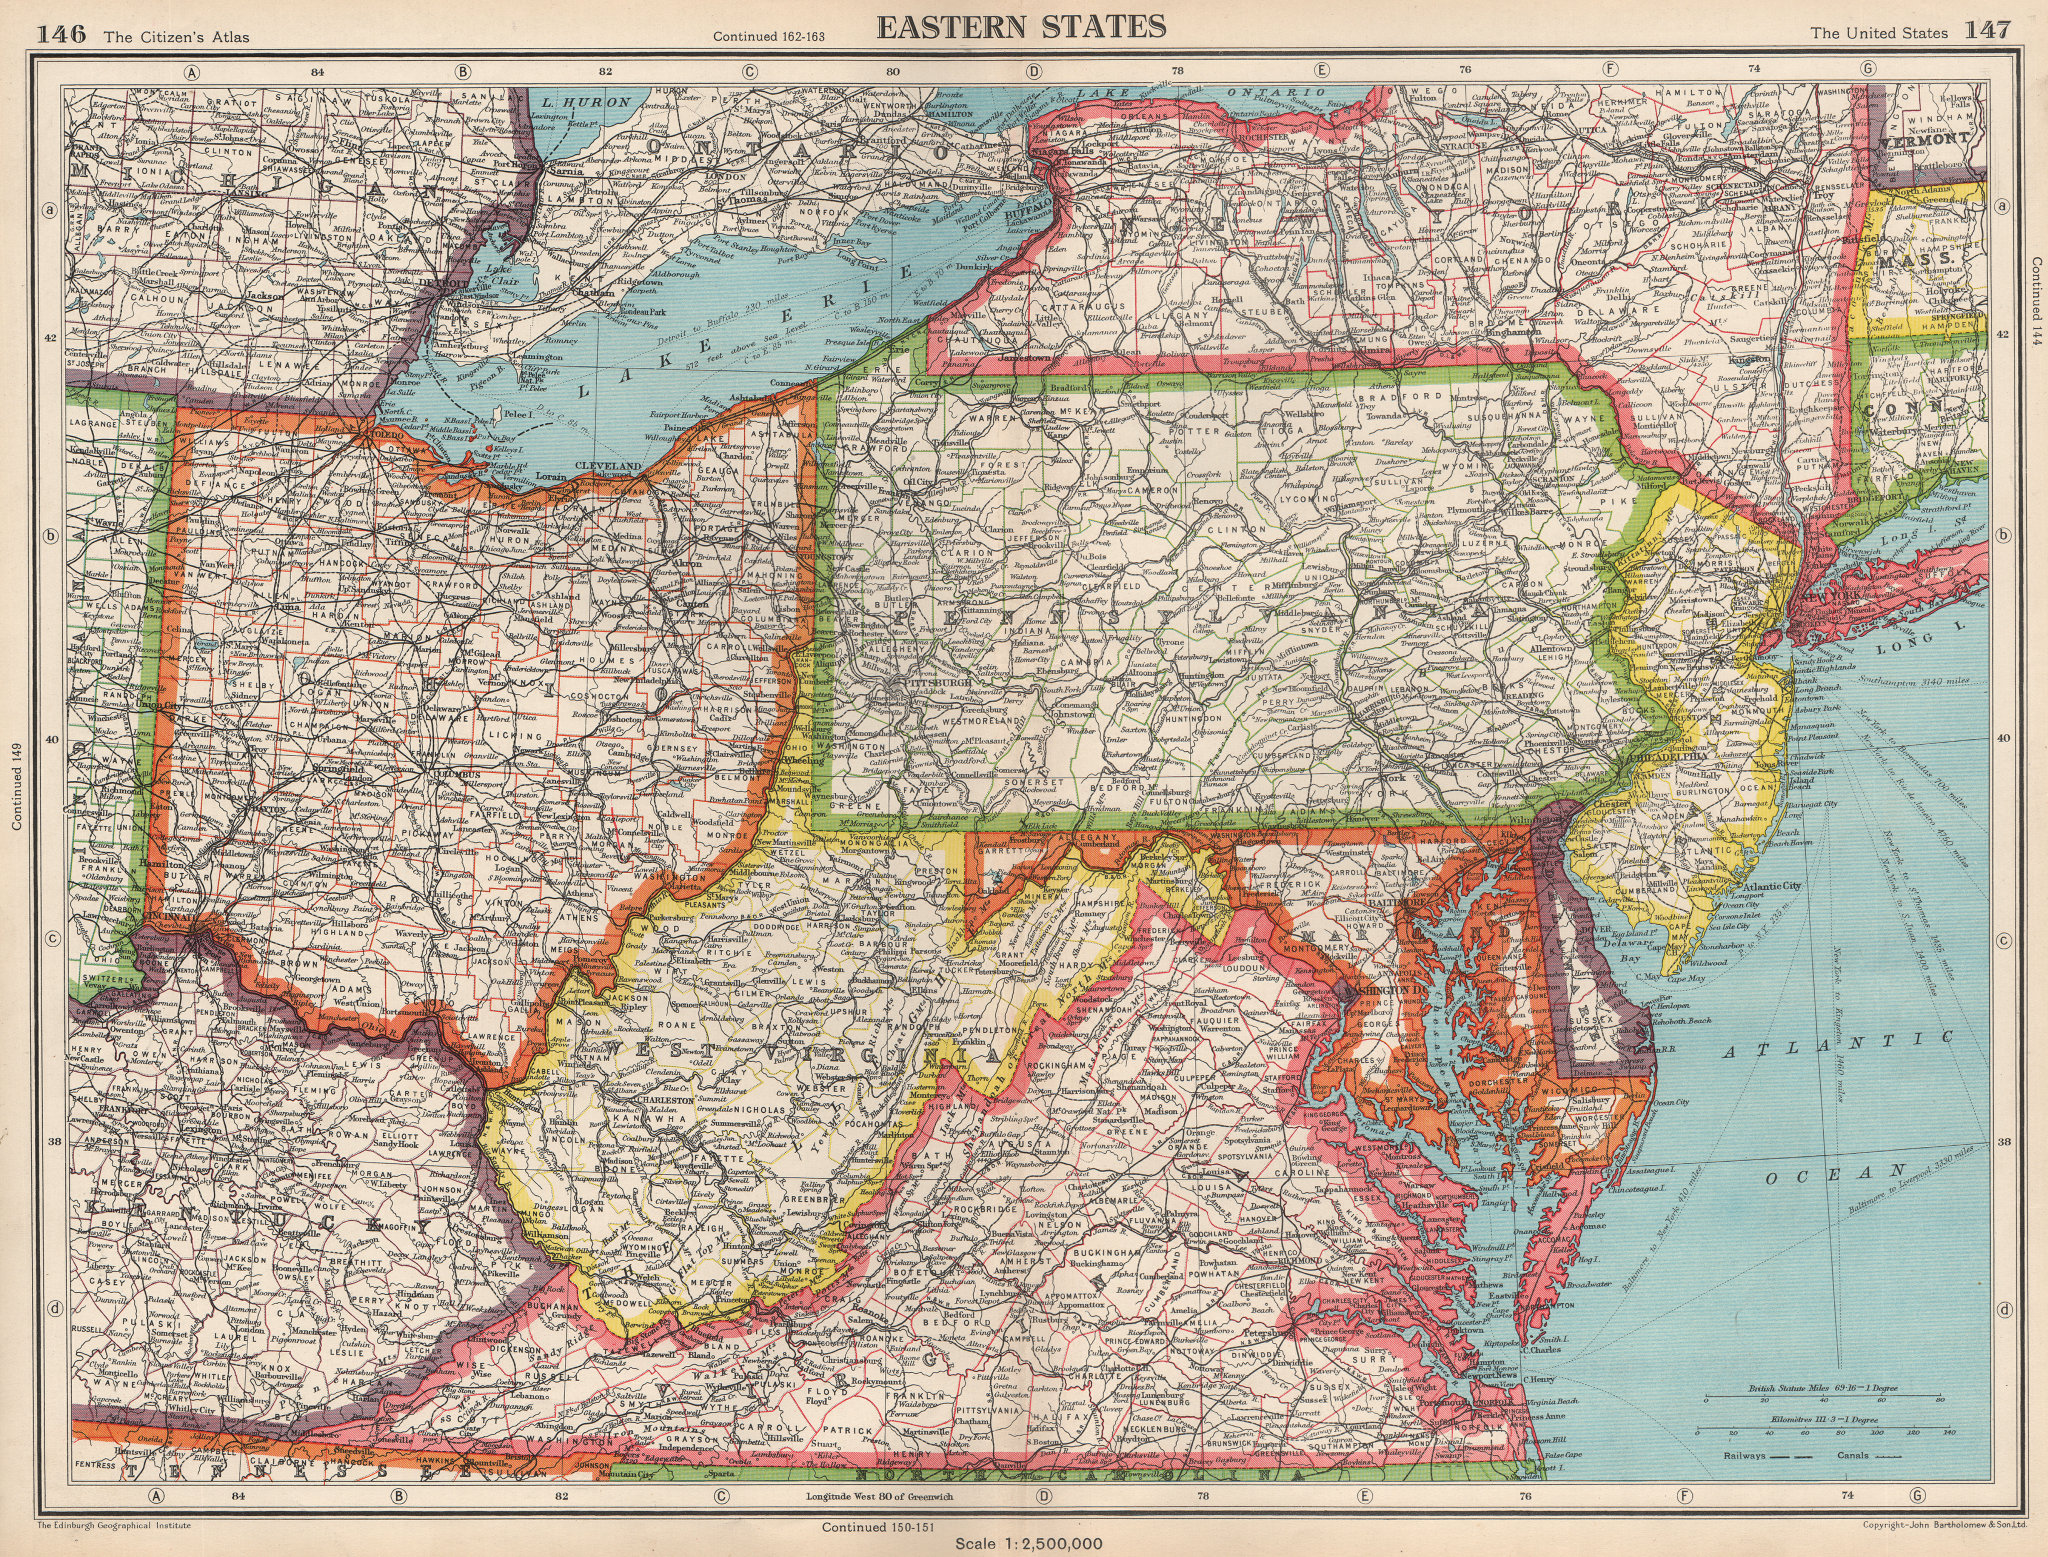 Associate Product USA EASTERN STATES.WV Virginia Pennsylvania MD Delaware New Jersey Ohio 1952 map